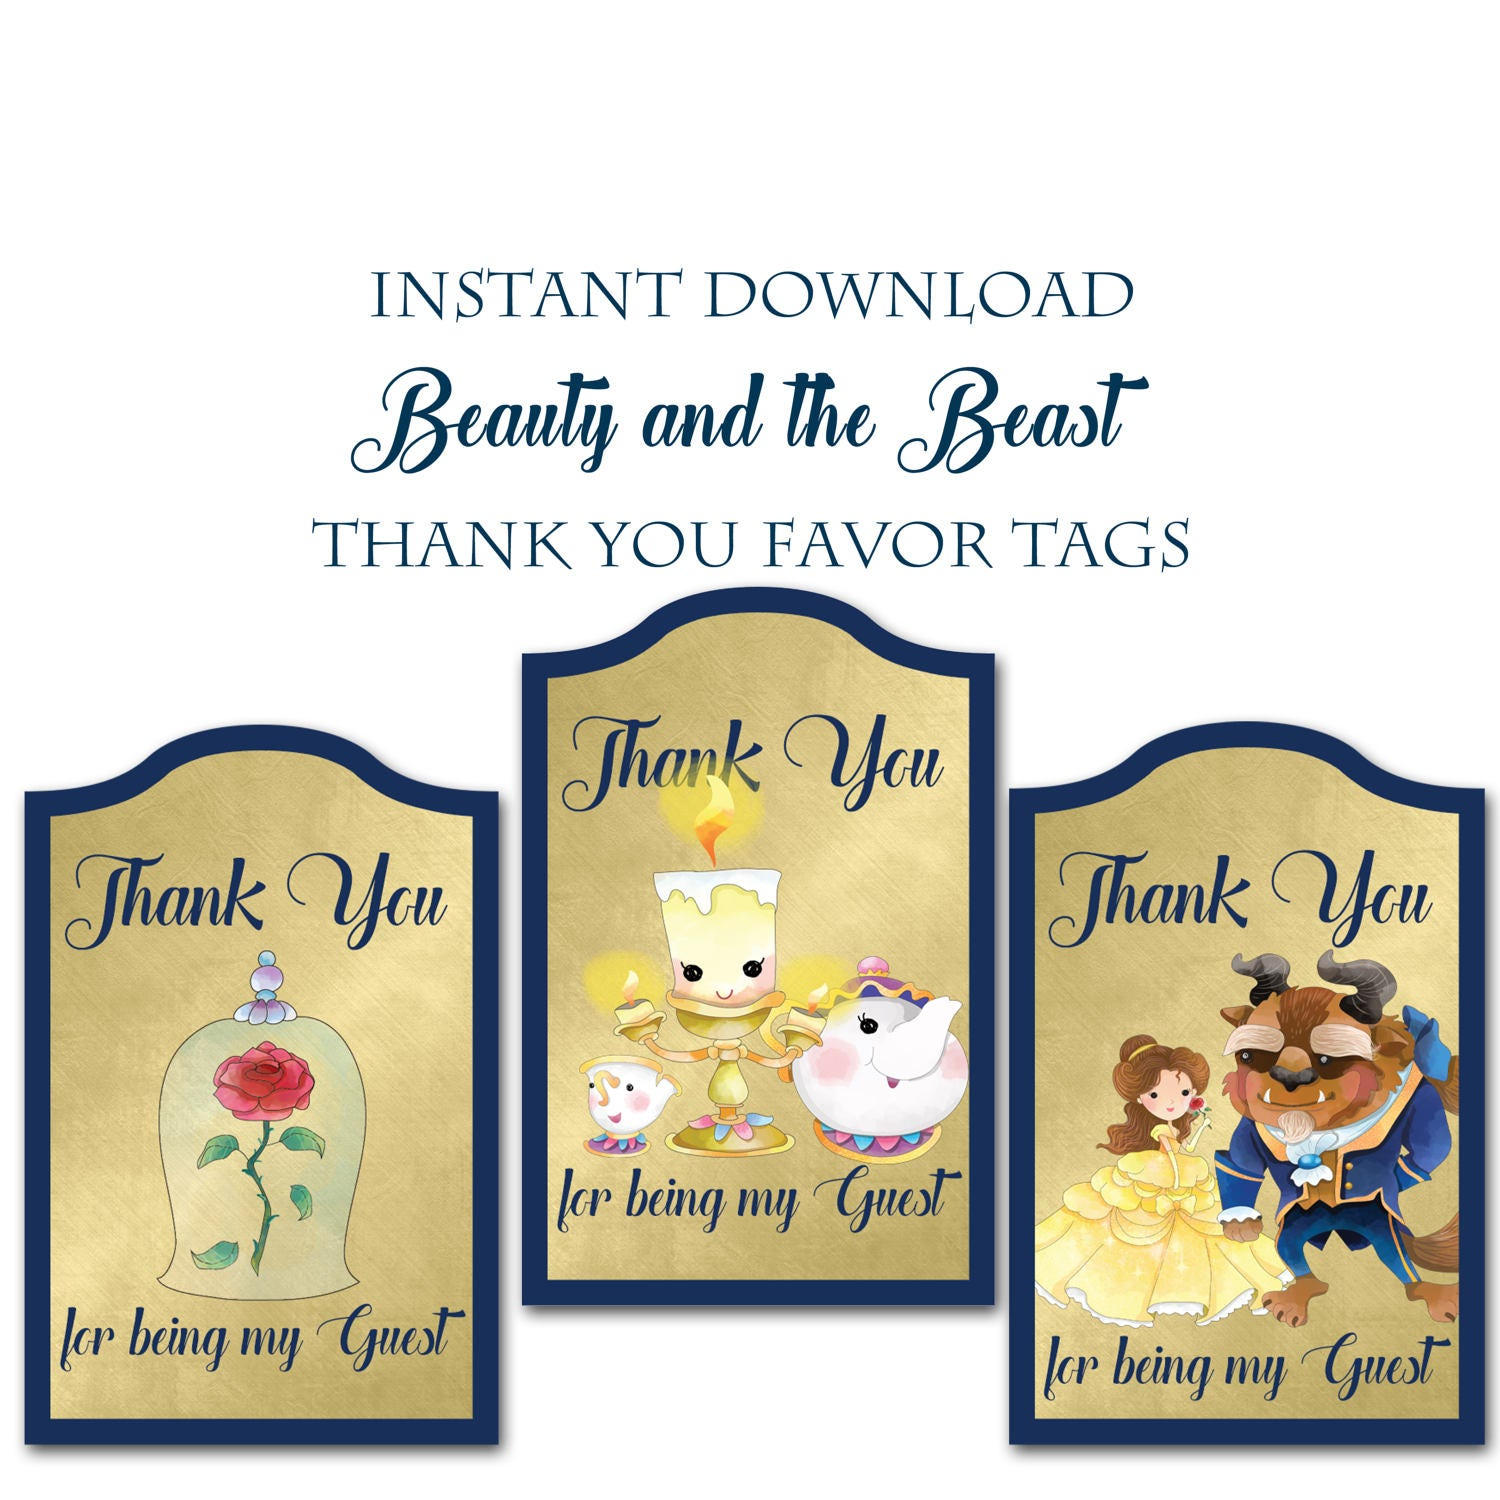 Beauty and the Beast Thank you Gift Tags Instant Download